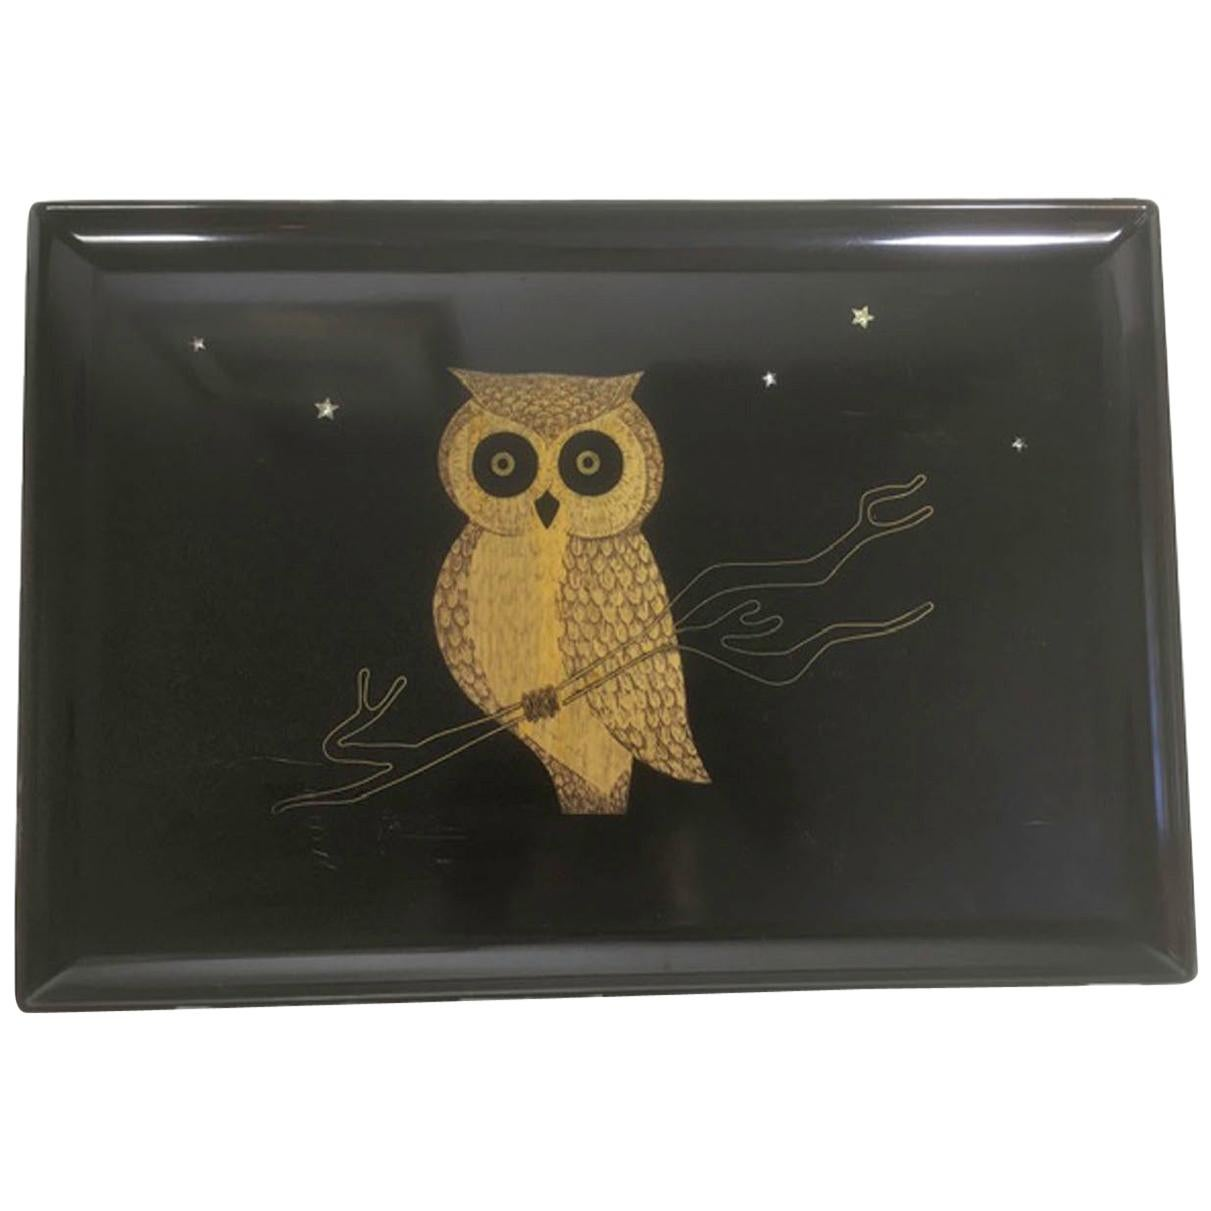 Mid 20th Century Couroc Phenolic Resin Serving Tray, Inlaid Wood and Metal Owl